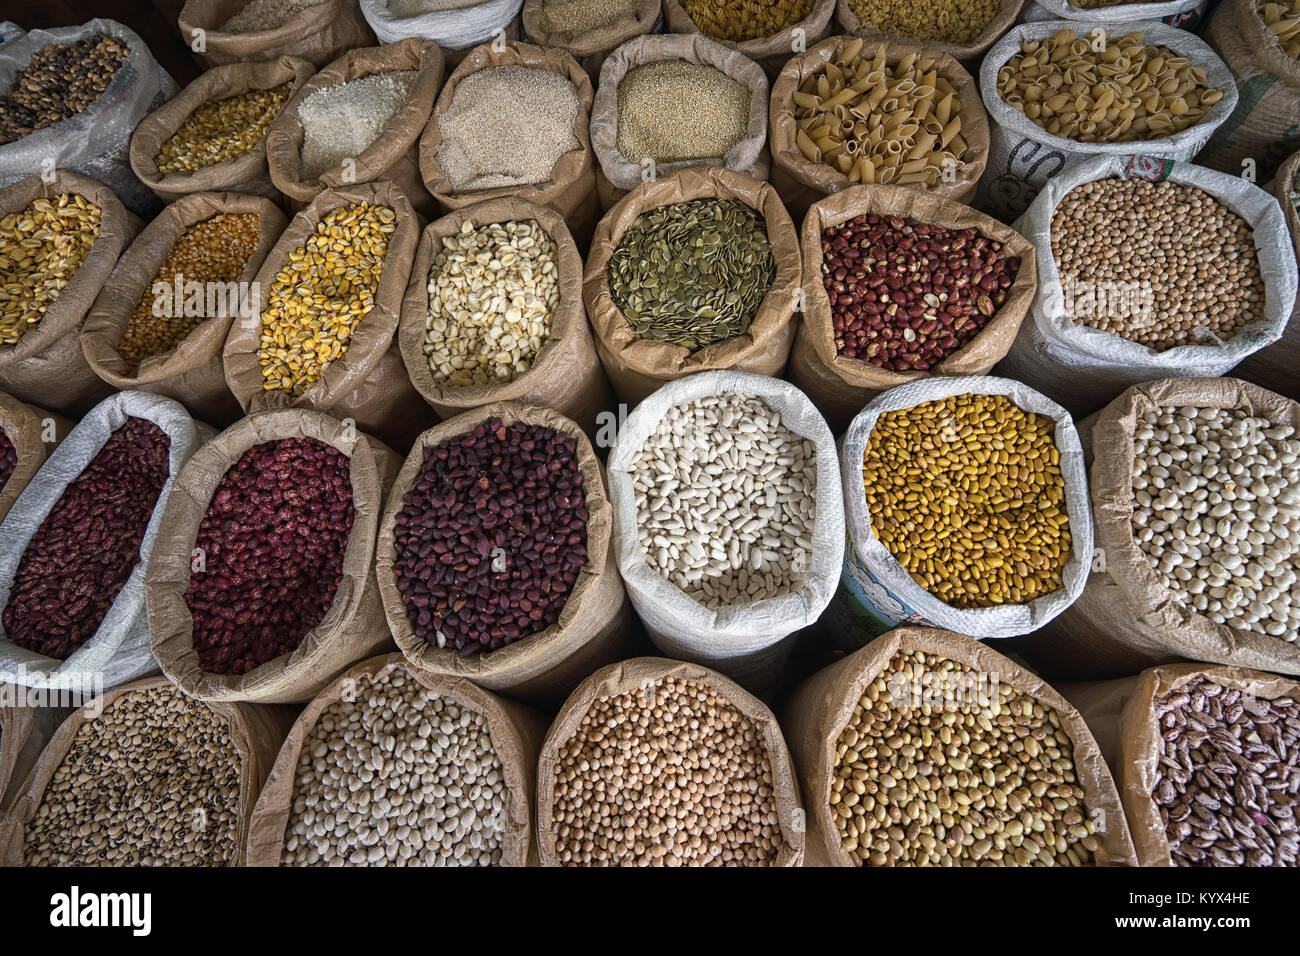 bulk dried foods in the Amazonas produce market of Ibarra, Ecuador - Stock Image